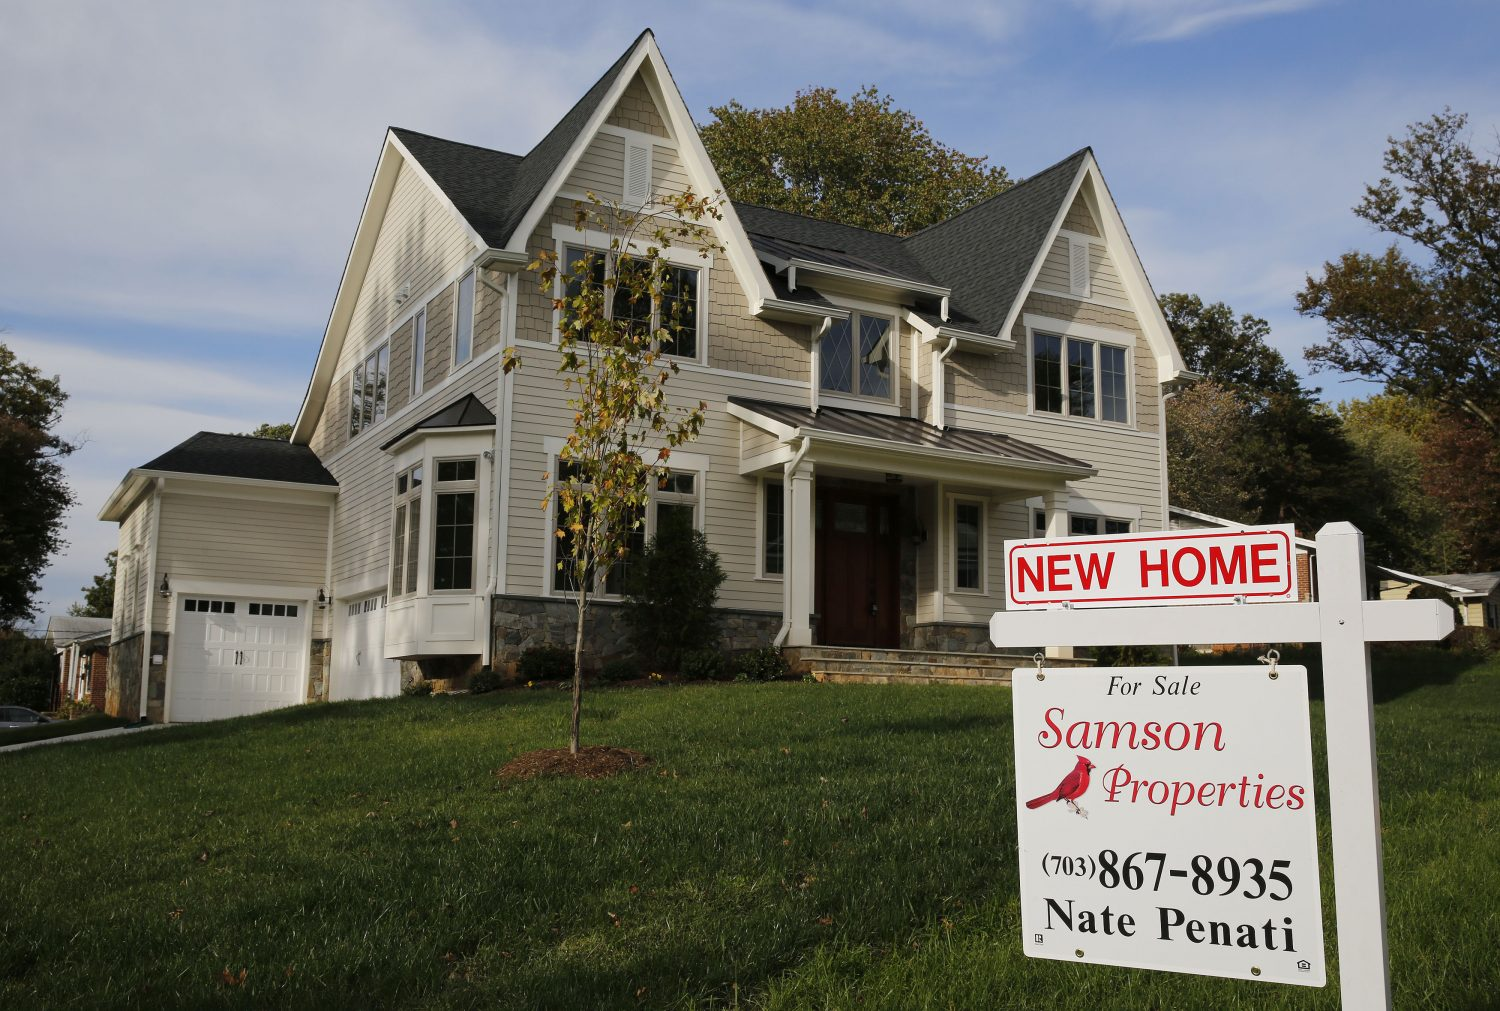 FILE PHOTO: A real estate sign advertising a new home for sale is pictured in Vienna, Virginia, U.S. October 20, 2014. REUTERS/Larry Downing